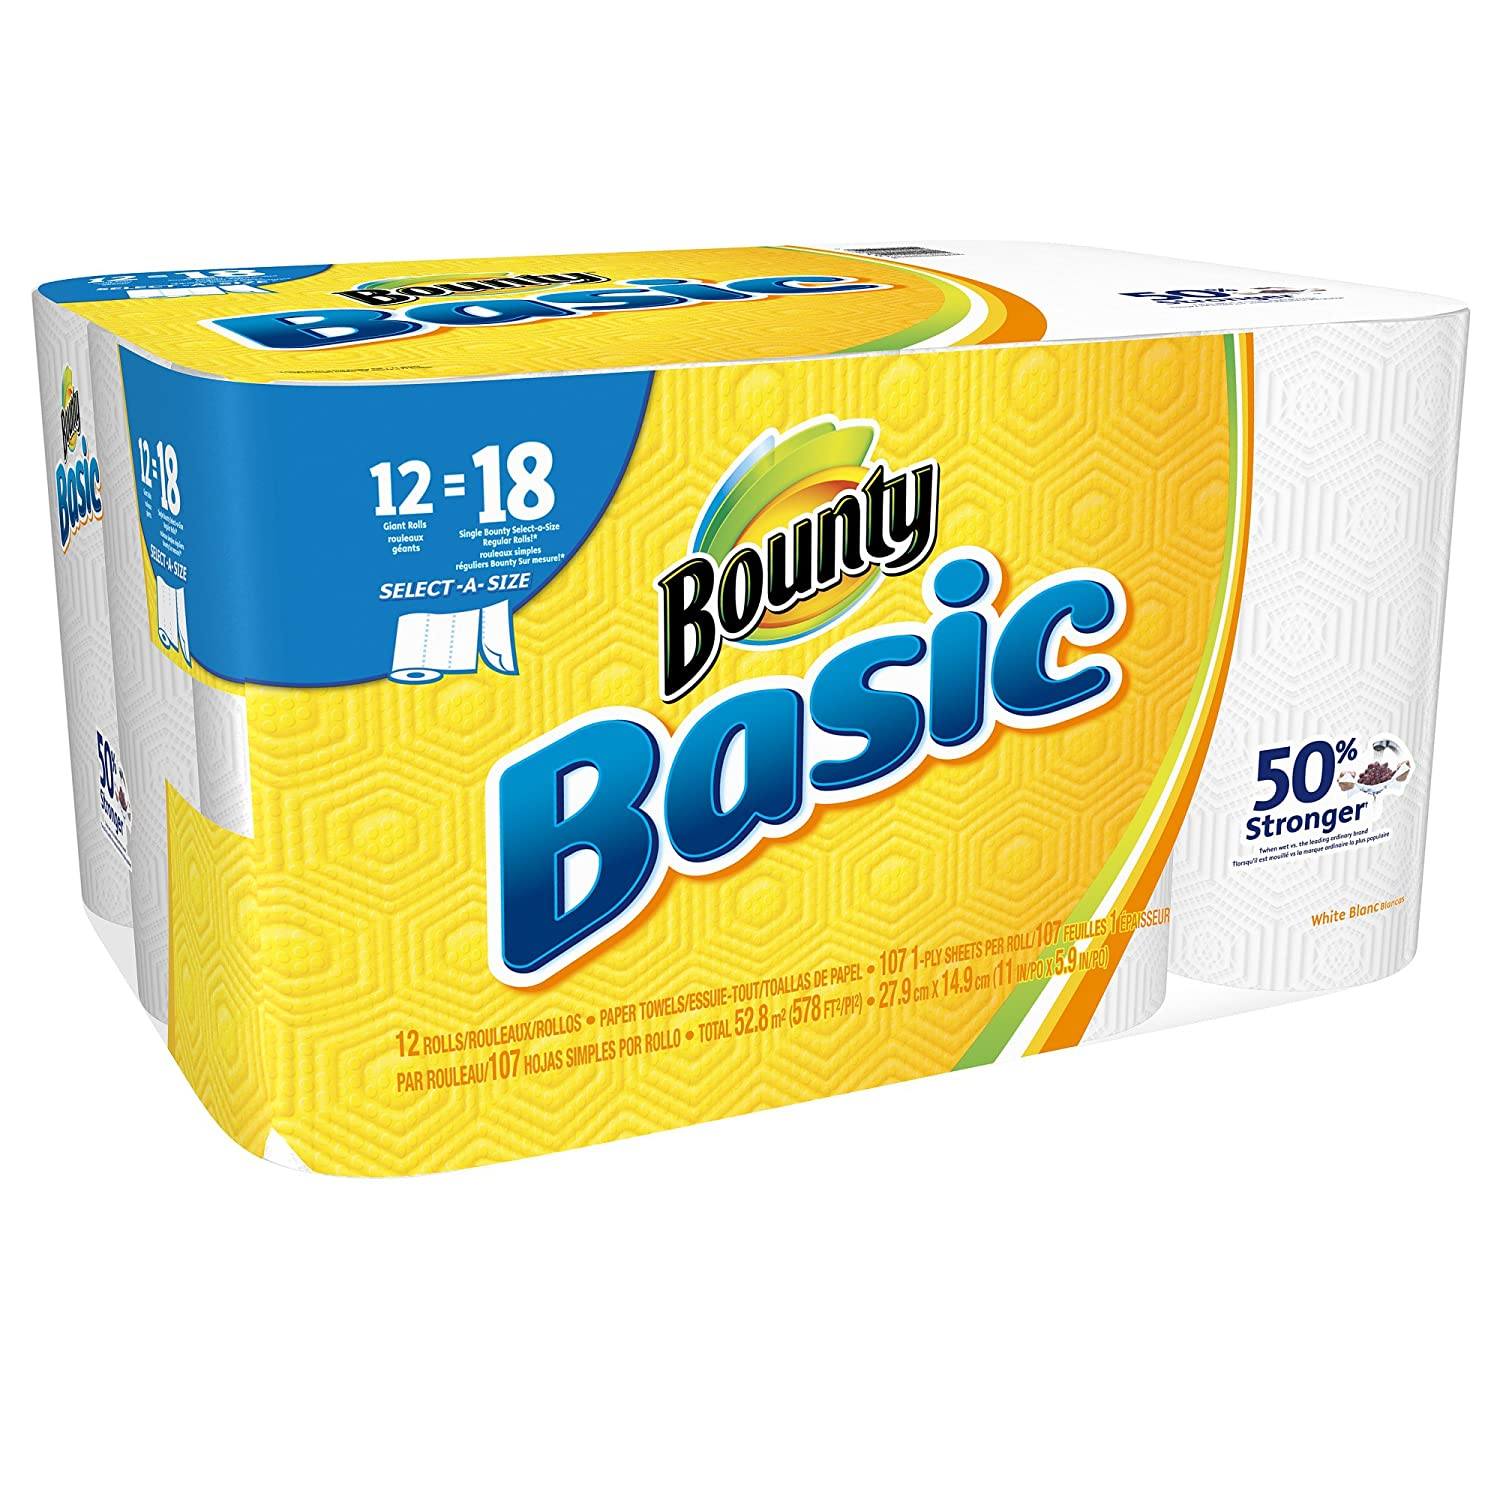 Amazon.com : Bounty Basic Select-a-Size Paper Towels, White, 12 Rolls : Grocery & Gourmet Food